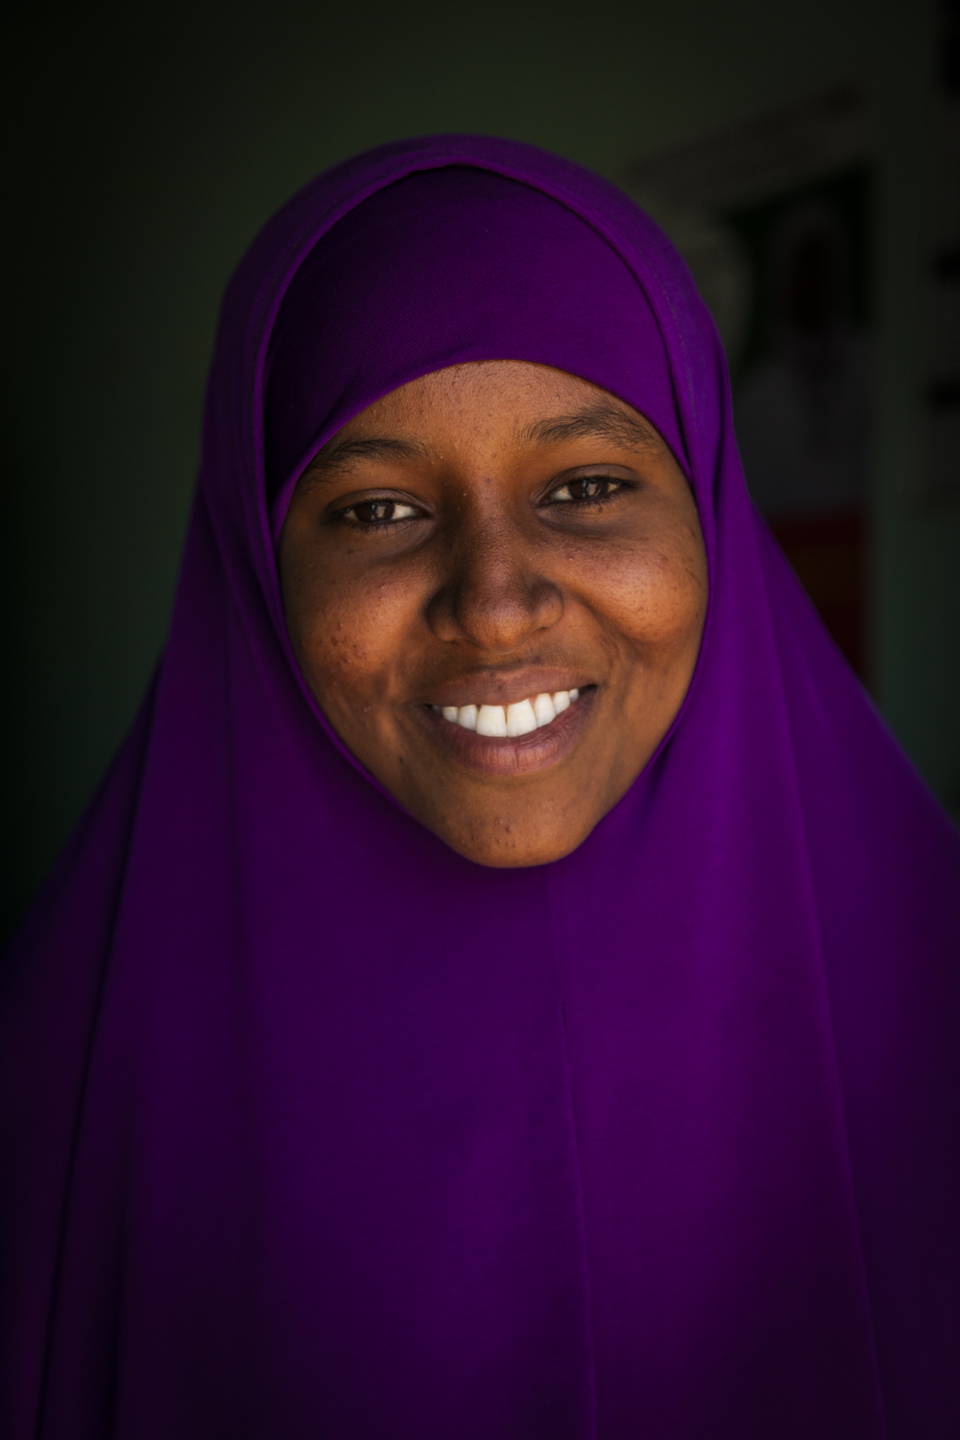 Community Health Worker, Margau Mohamed Samantar, age 22, at the Nugal Maternal and Child Health Center in Garowe, Puntland, November 15, 2014.